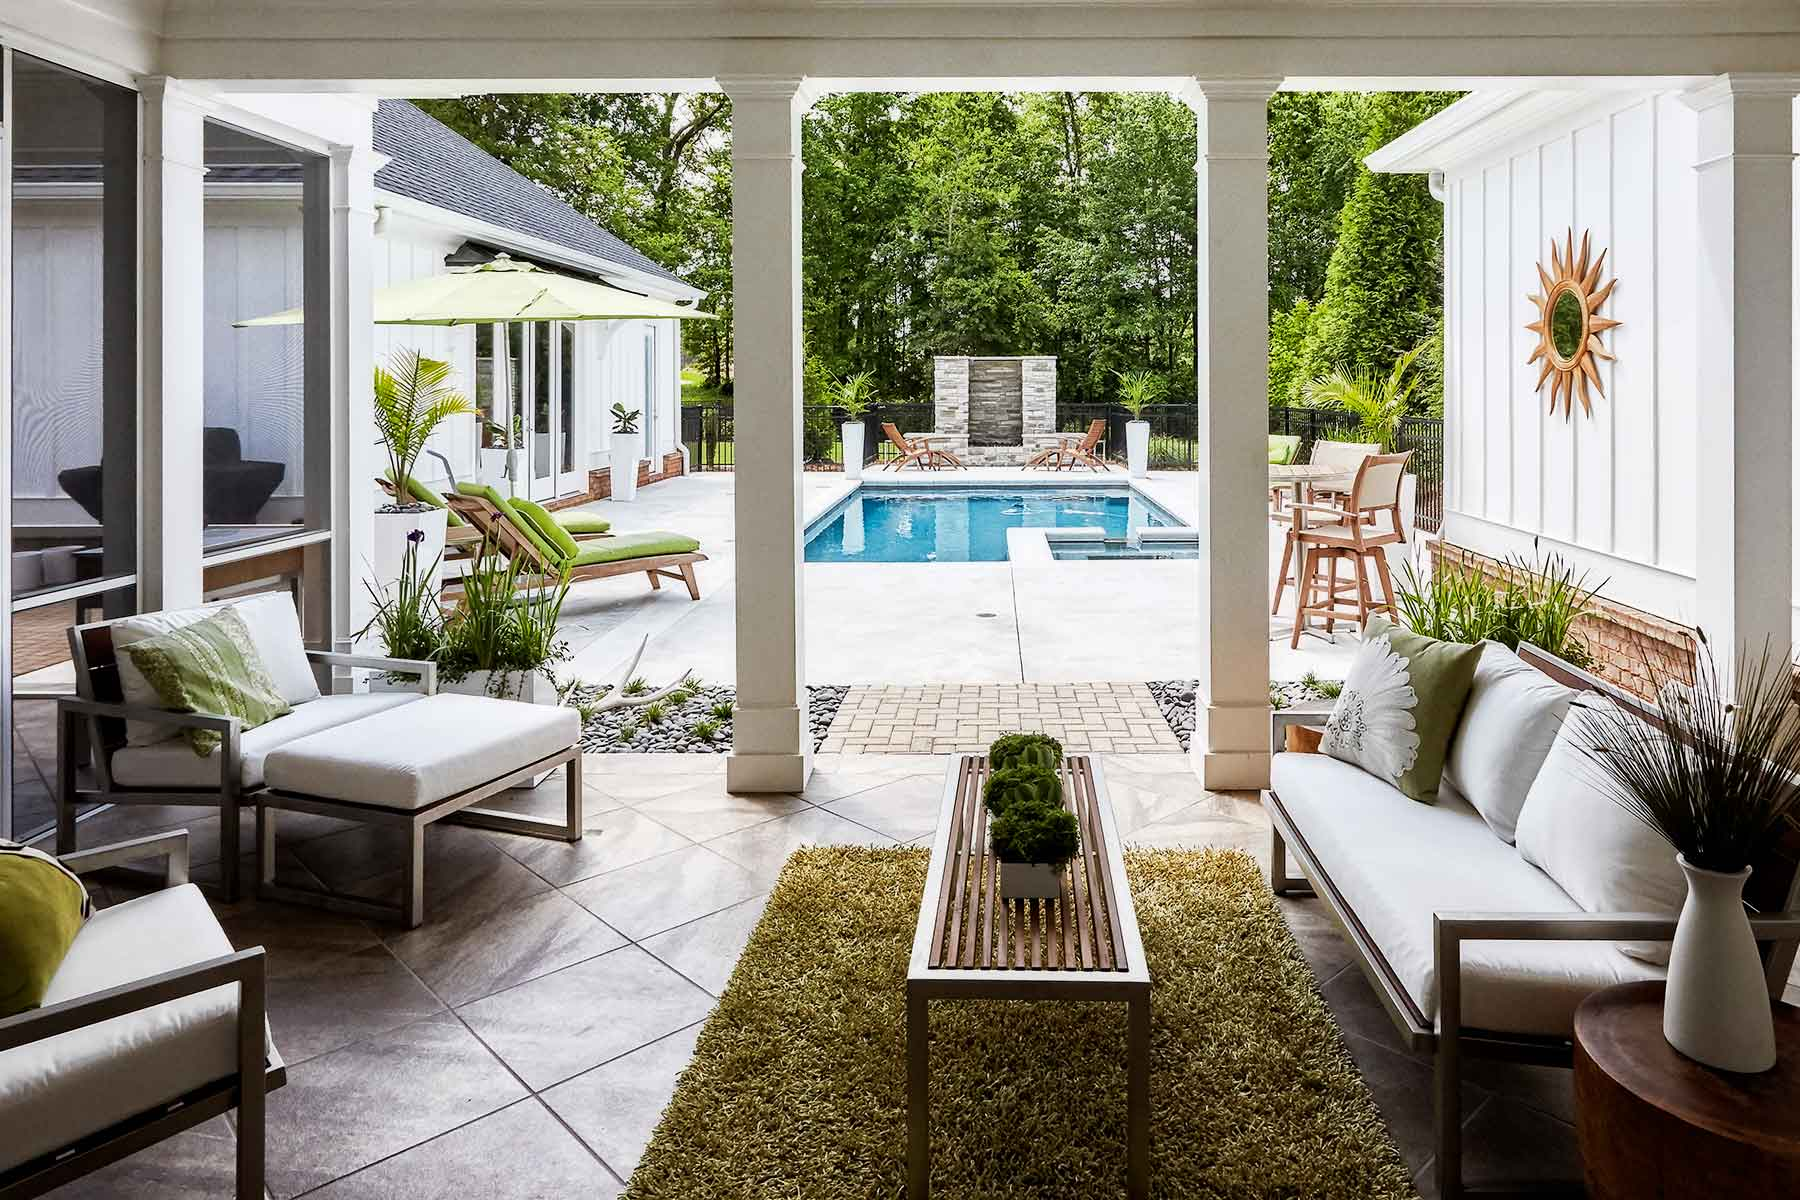 destination club home pool wooded veranda outdoors